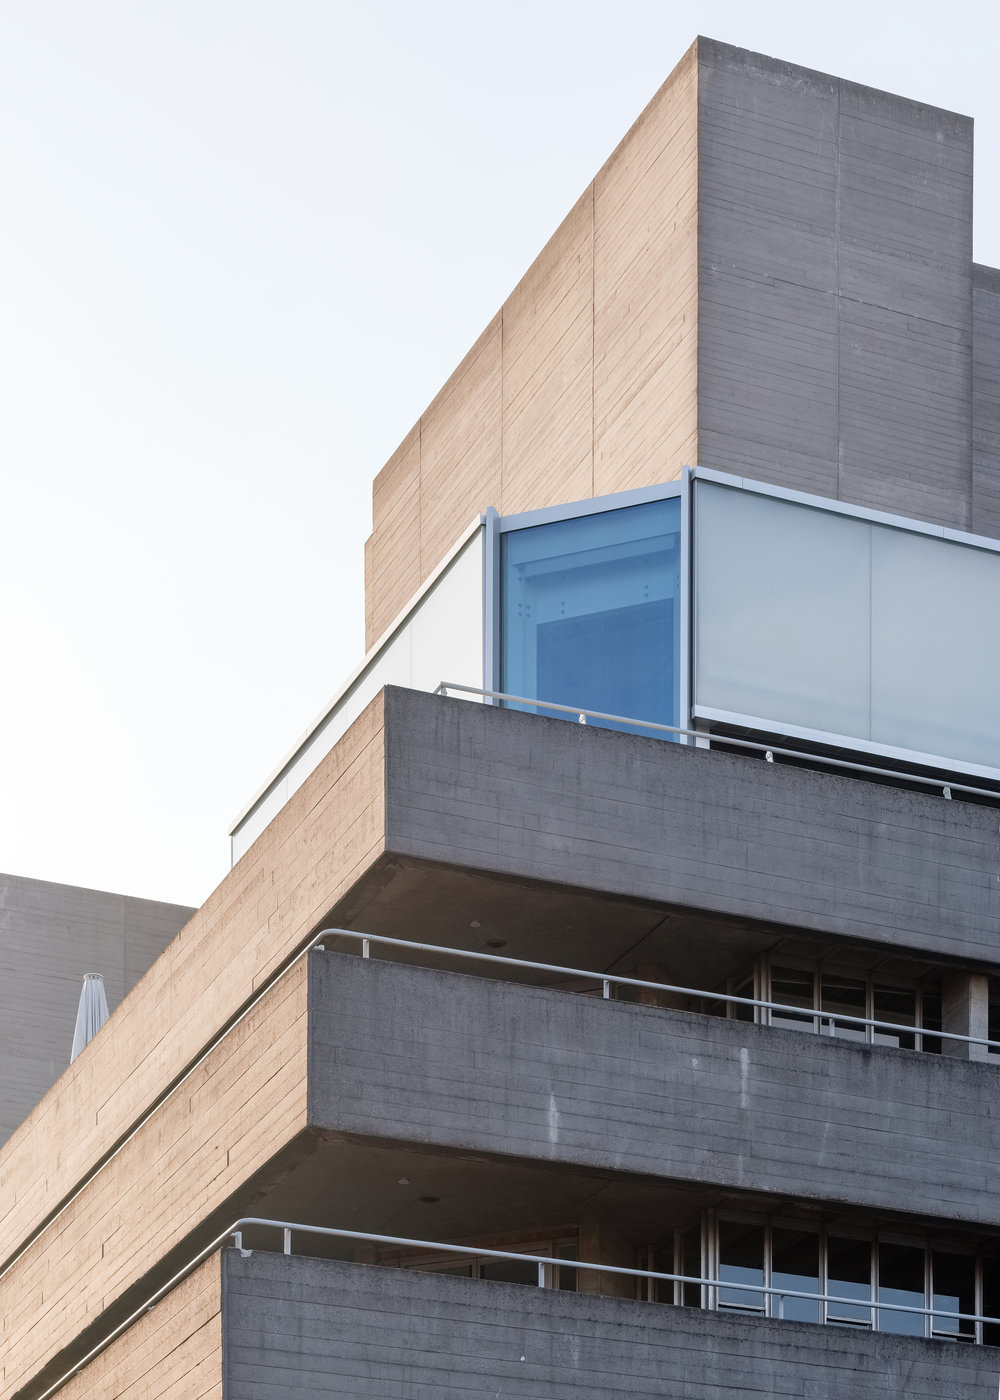 Fred+Howarth+Photography_National+Theater+Deck_07.jpg